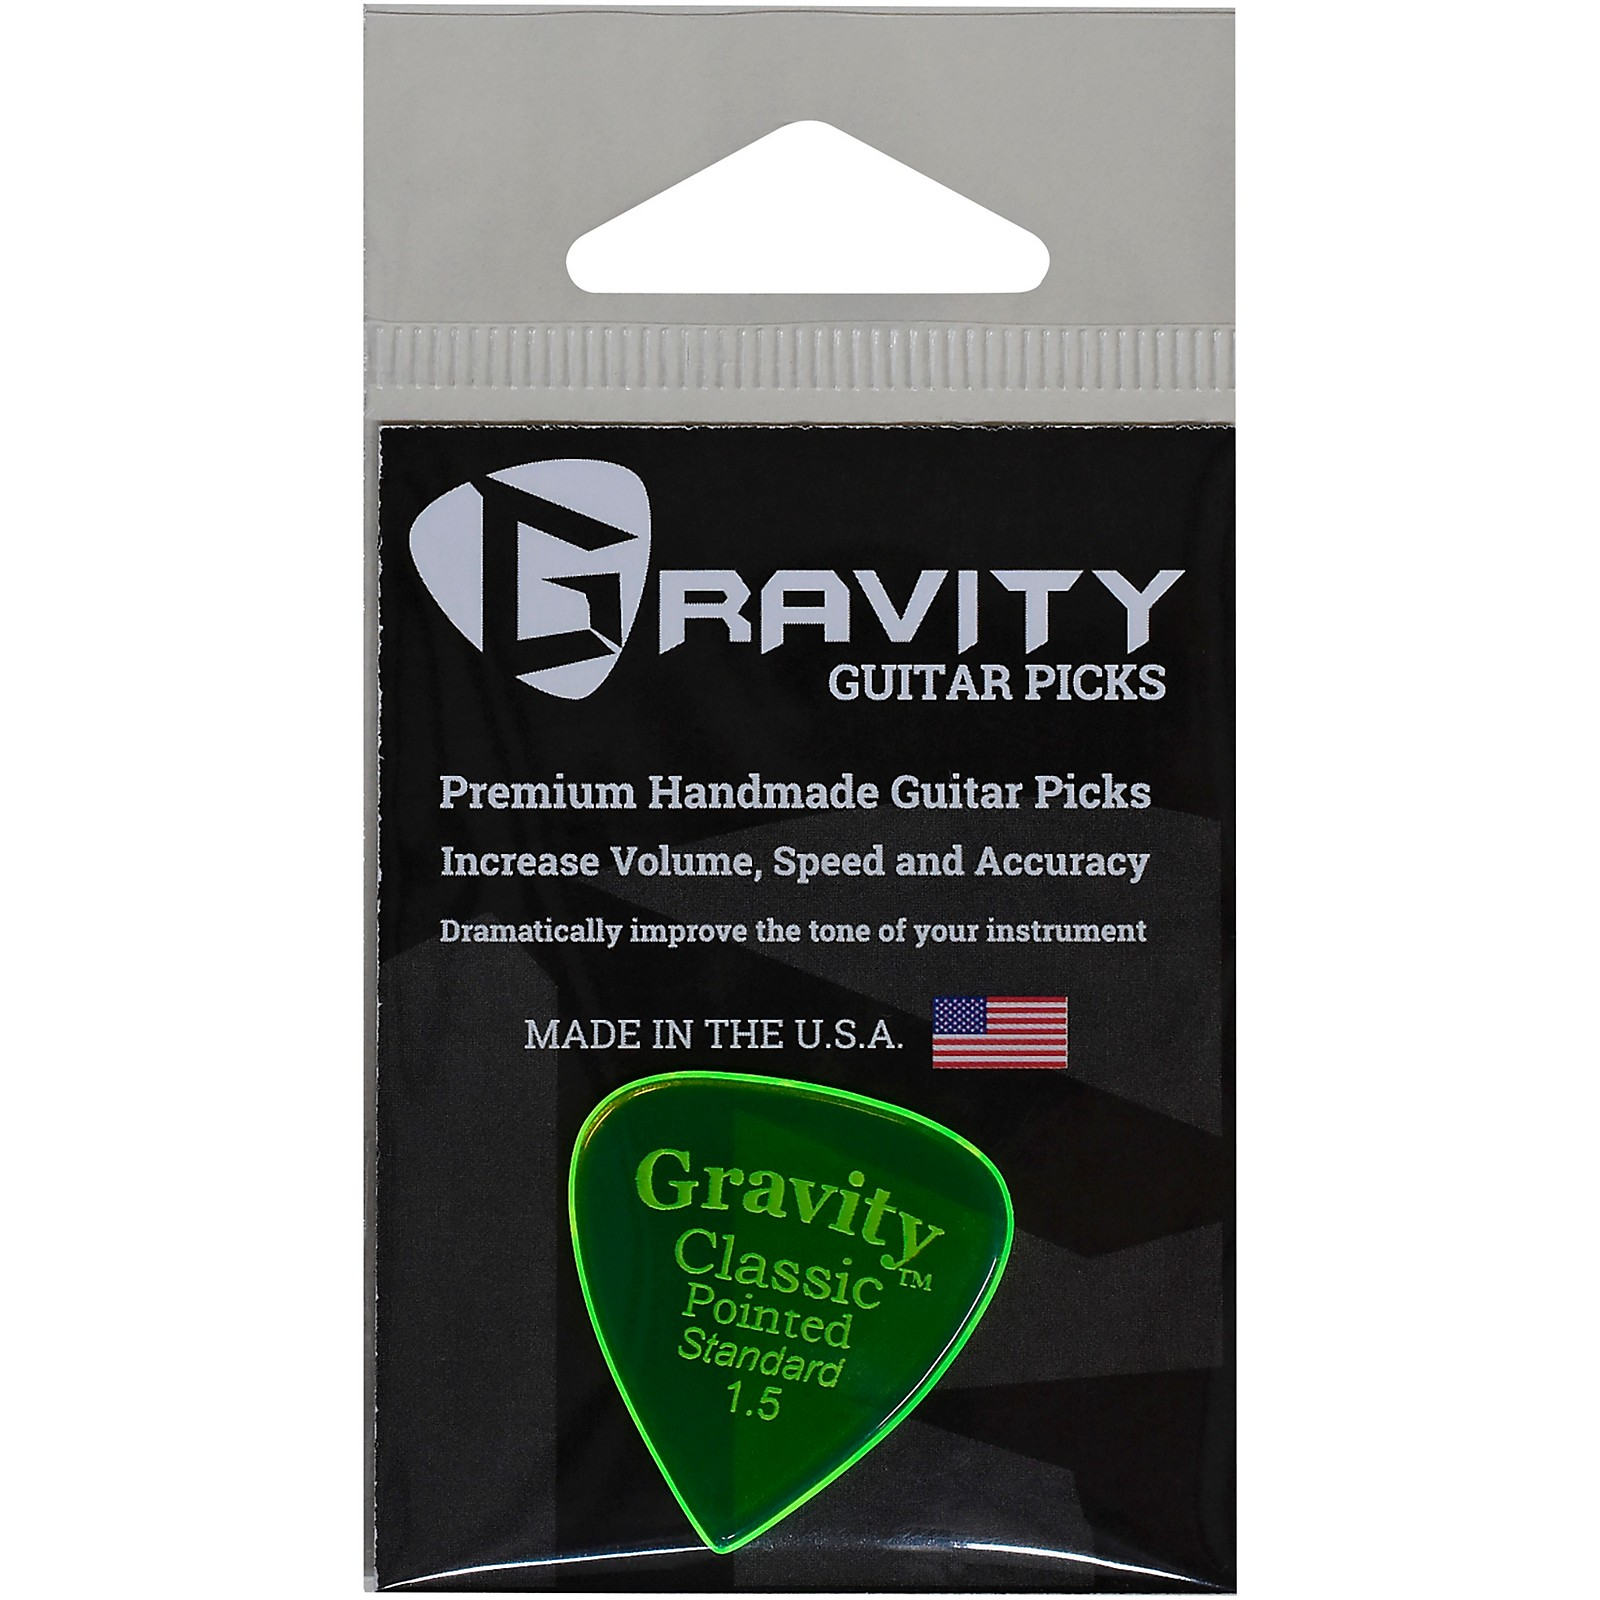 GRAVITY PICKS Classic Pointed Standard Polished Fluorescent Green Guitar Picks